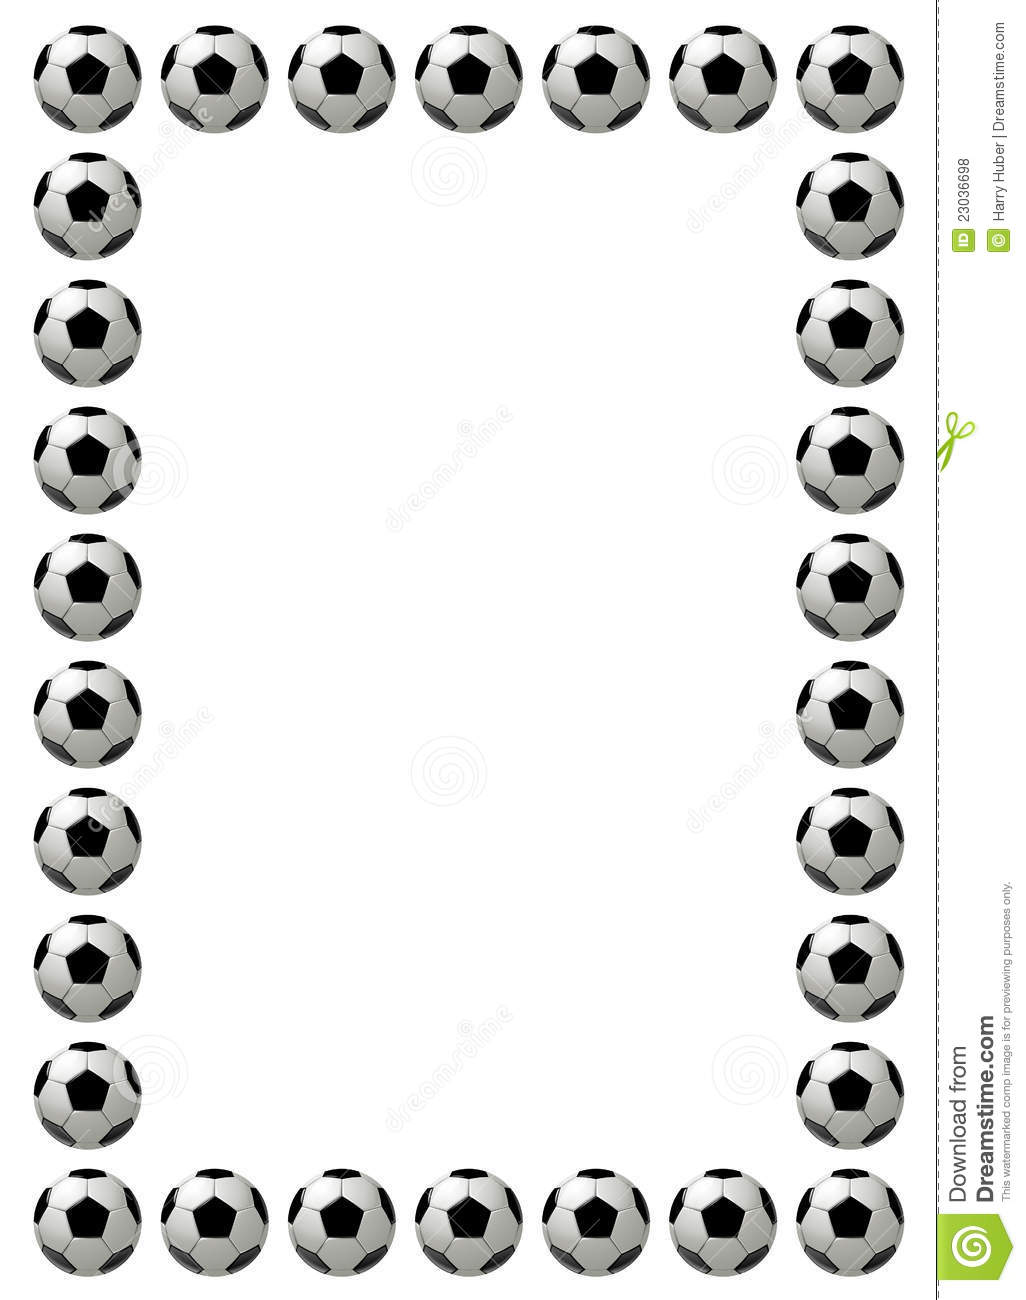 Football Border ...Clipart Gallery Microsoft Office